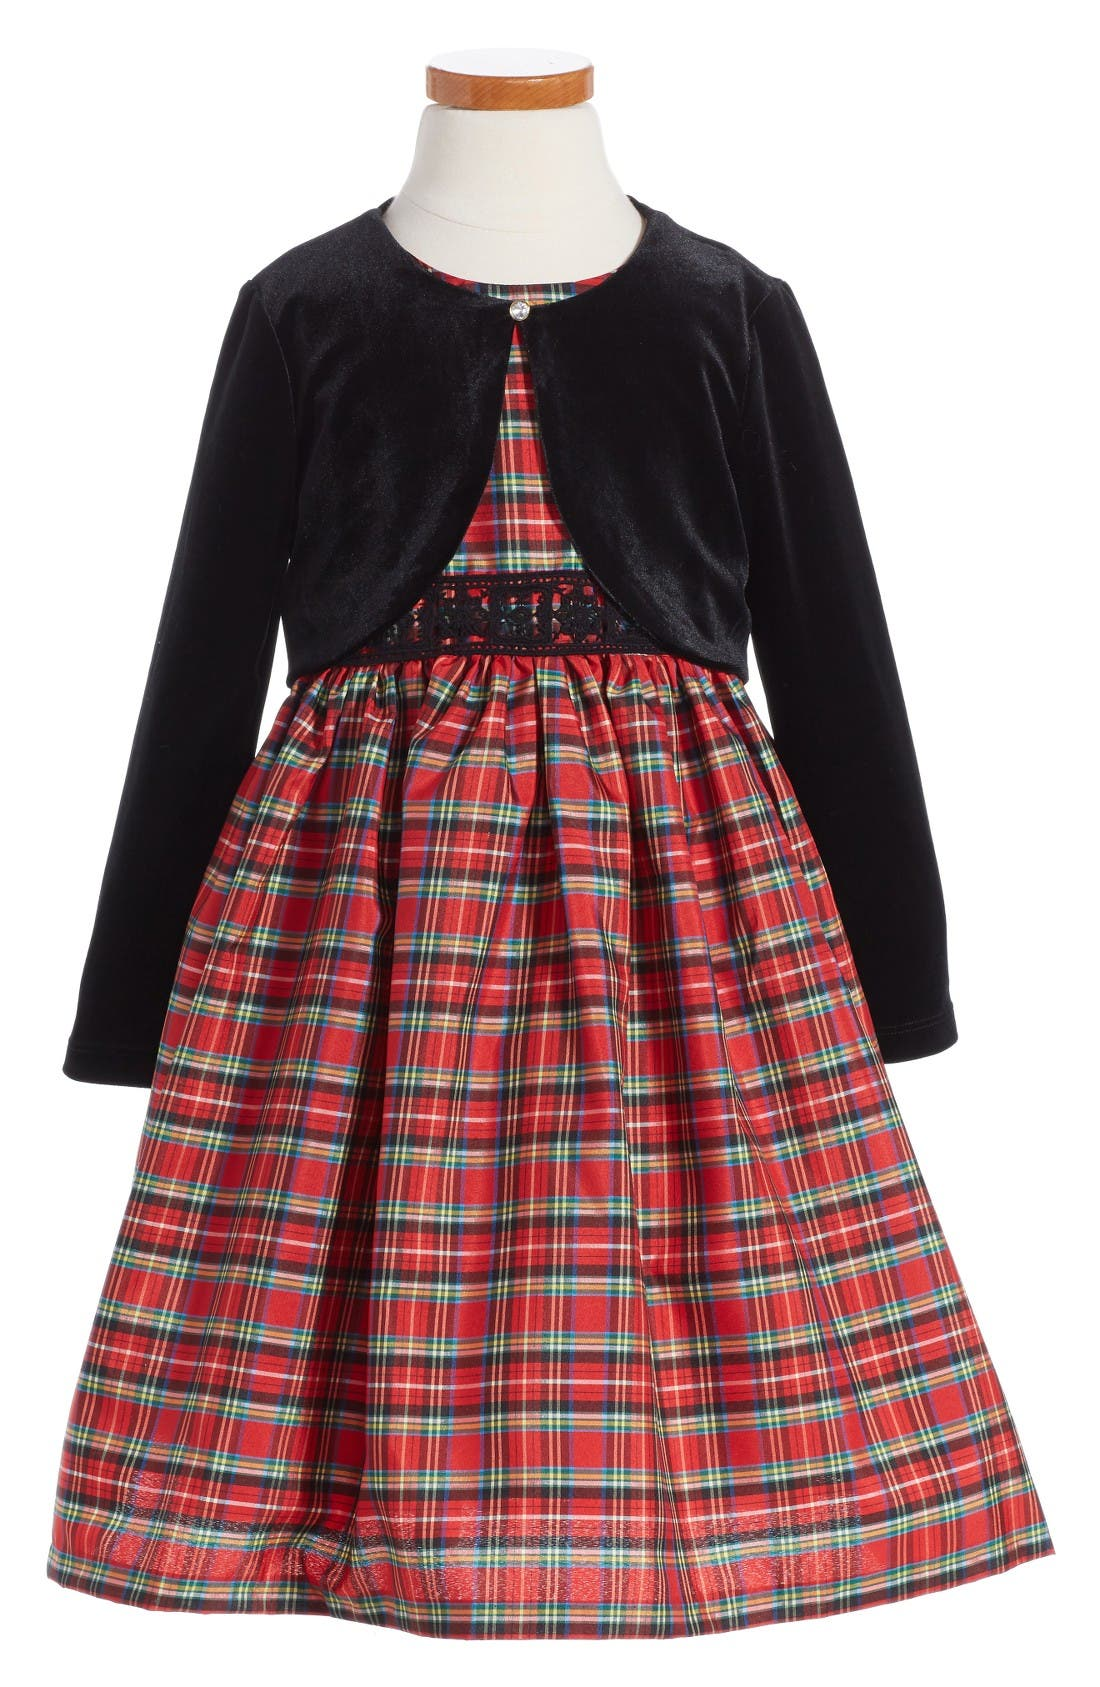 Main Image - Pippa & Julie Plaid Dress & Velvet Jacket (Toddler Girls, Little Girls & Big Girls)